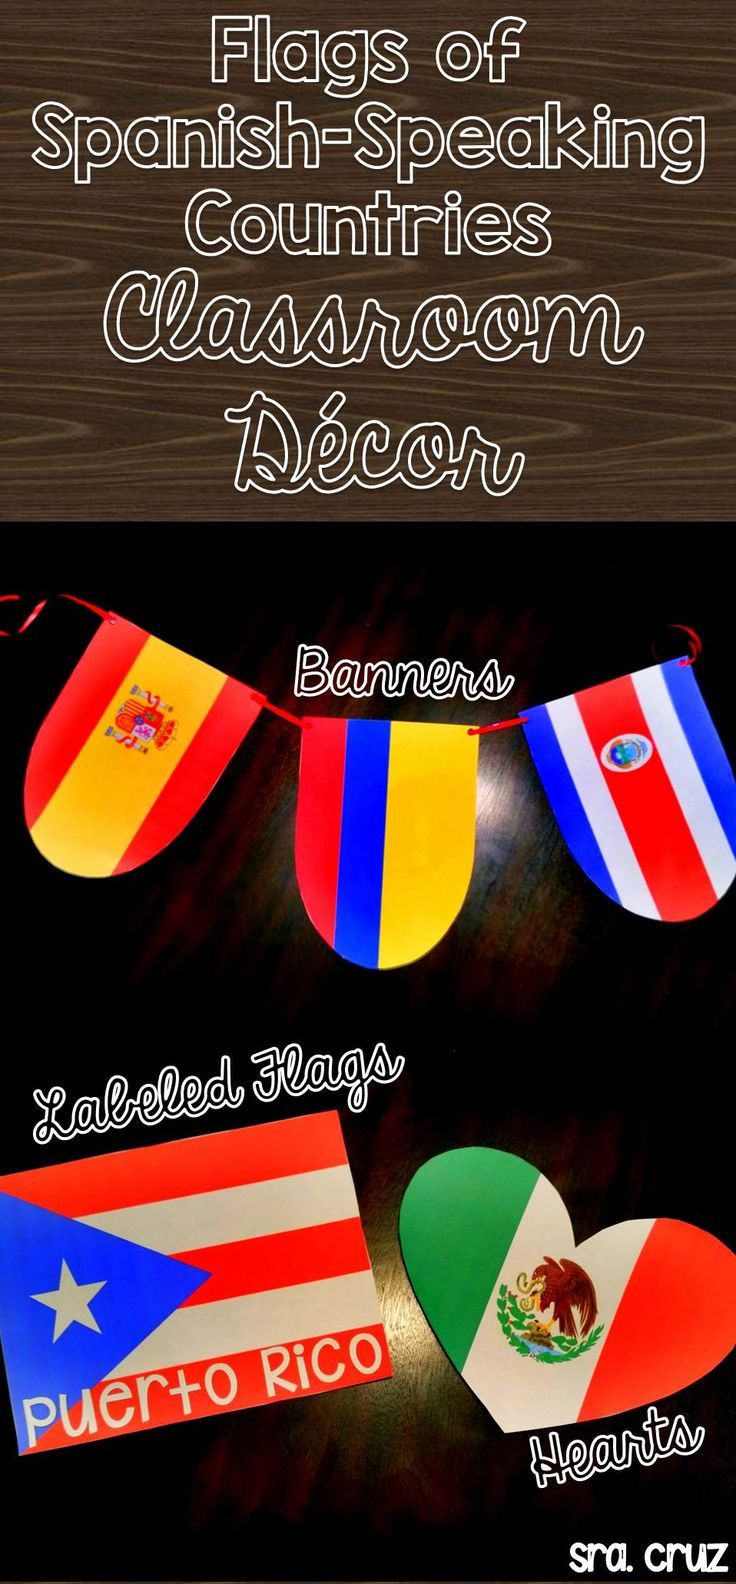 Carlex Spanish Classroom Decorations : Best ideas about spanish speaking countries on